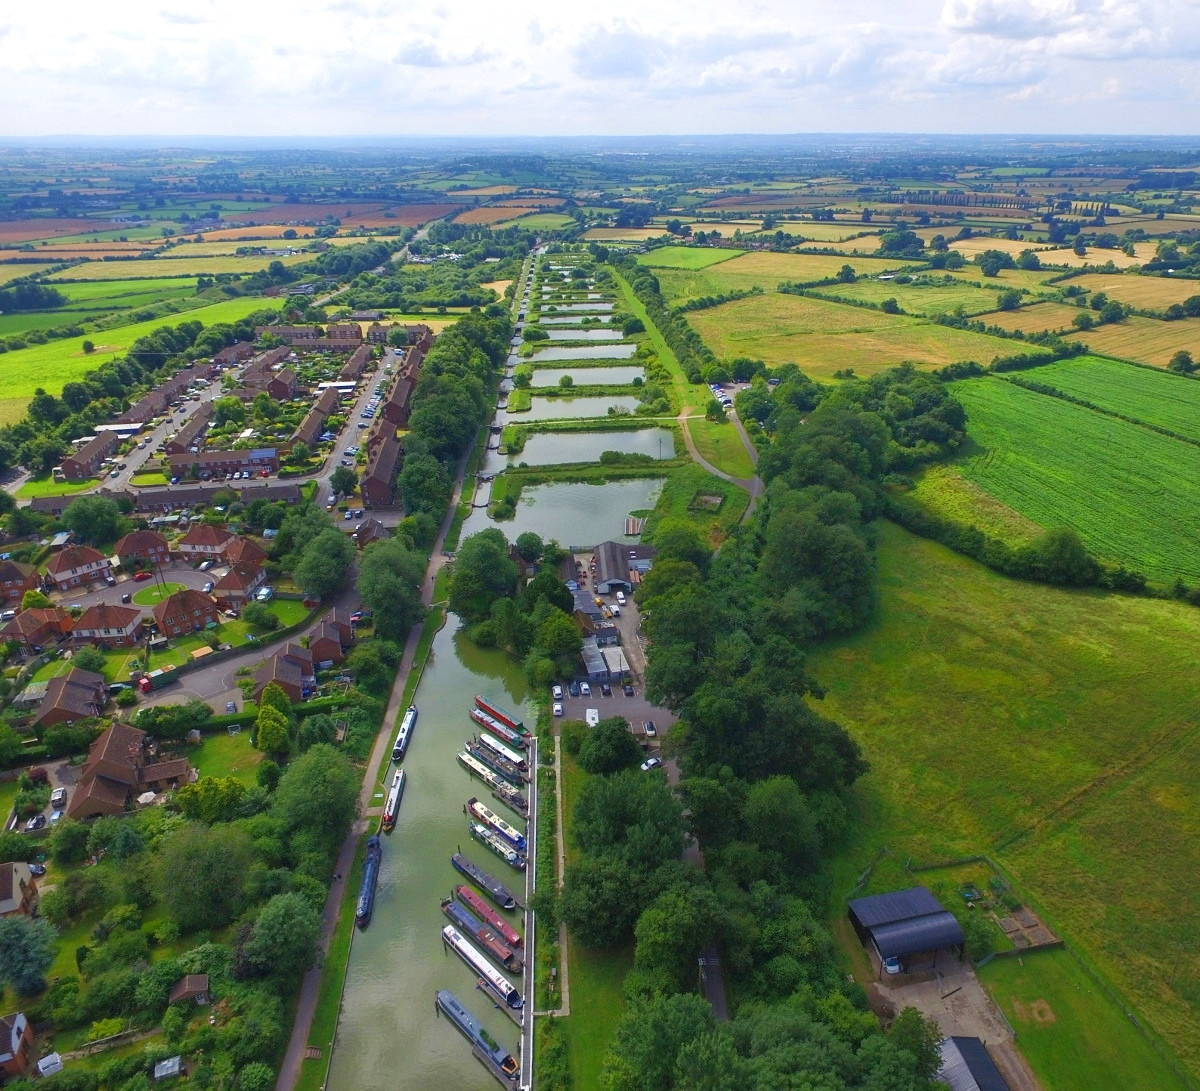 Caen Hill Locks from 400 feet - Looking down from Bath Road Bridge. Credit Rmckenzi